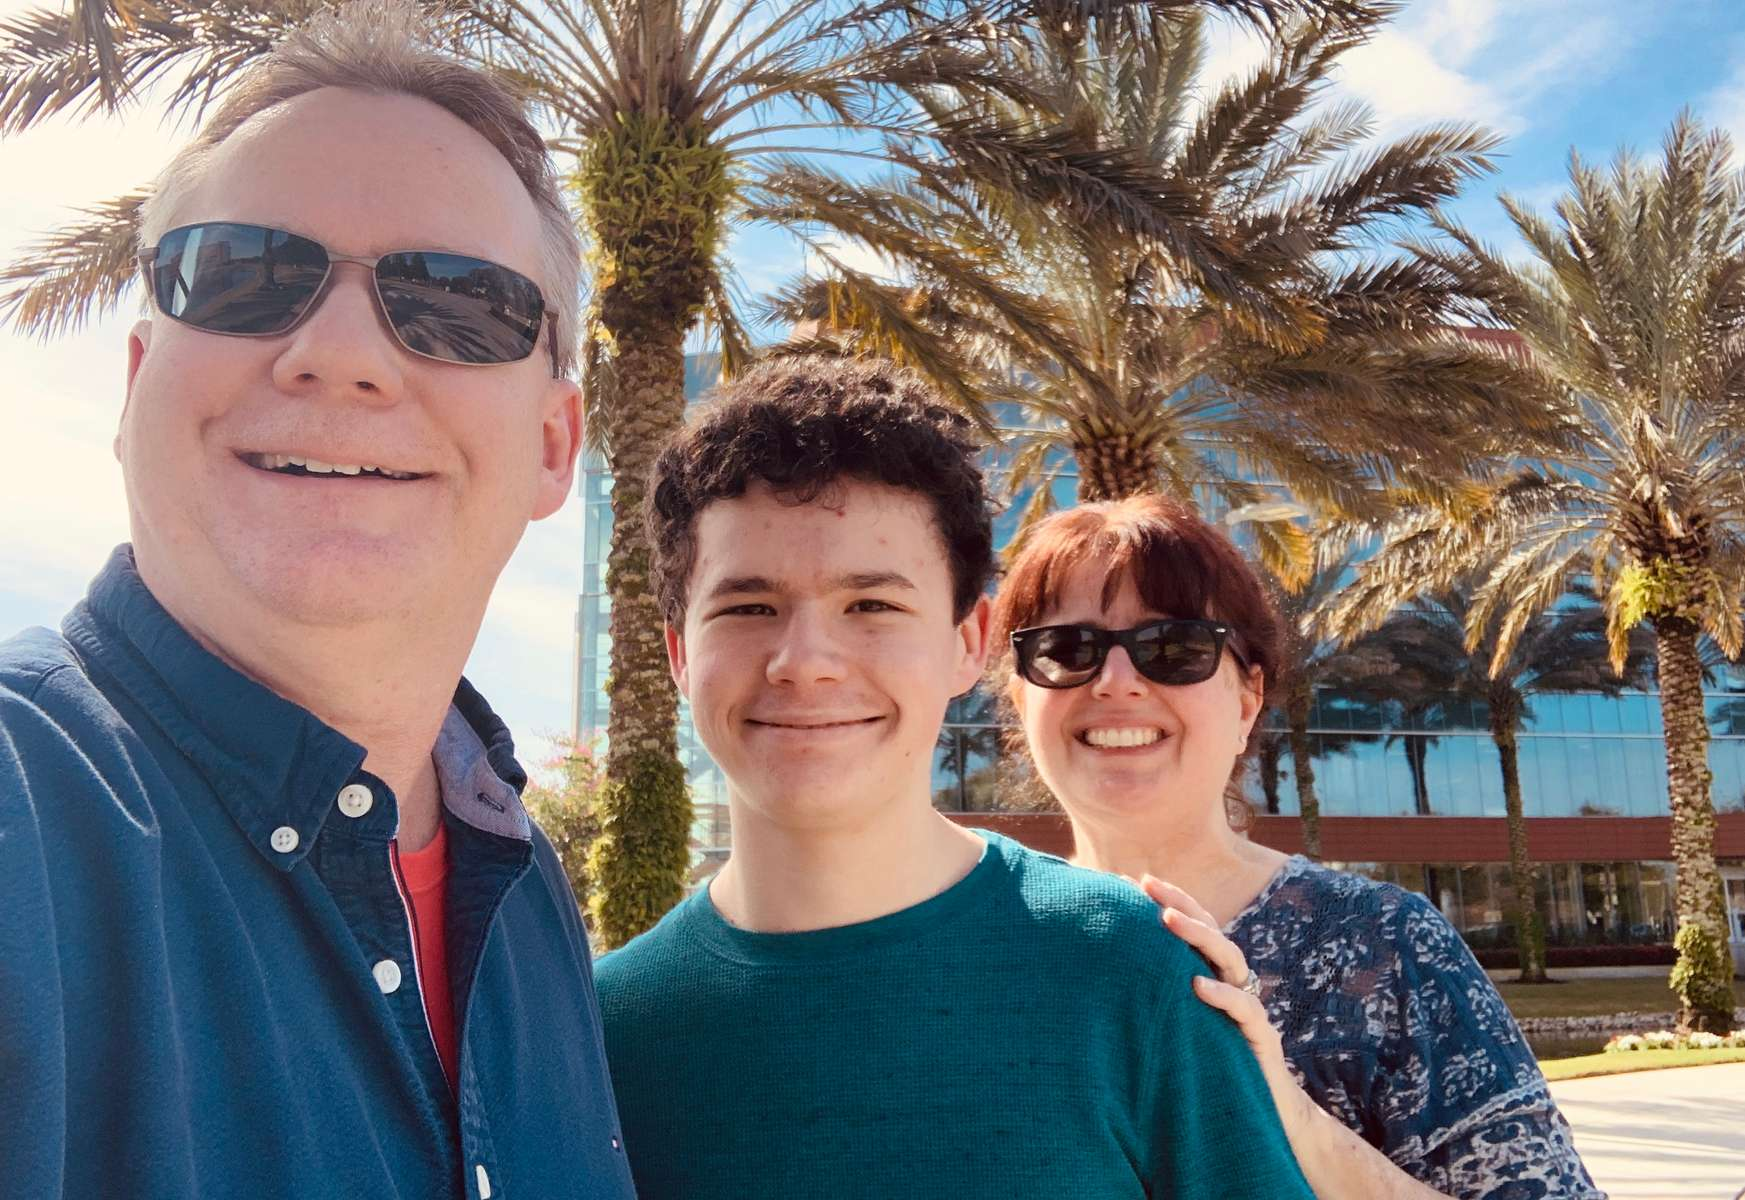 Moving to Florida to join AdventHealth